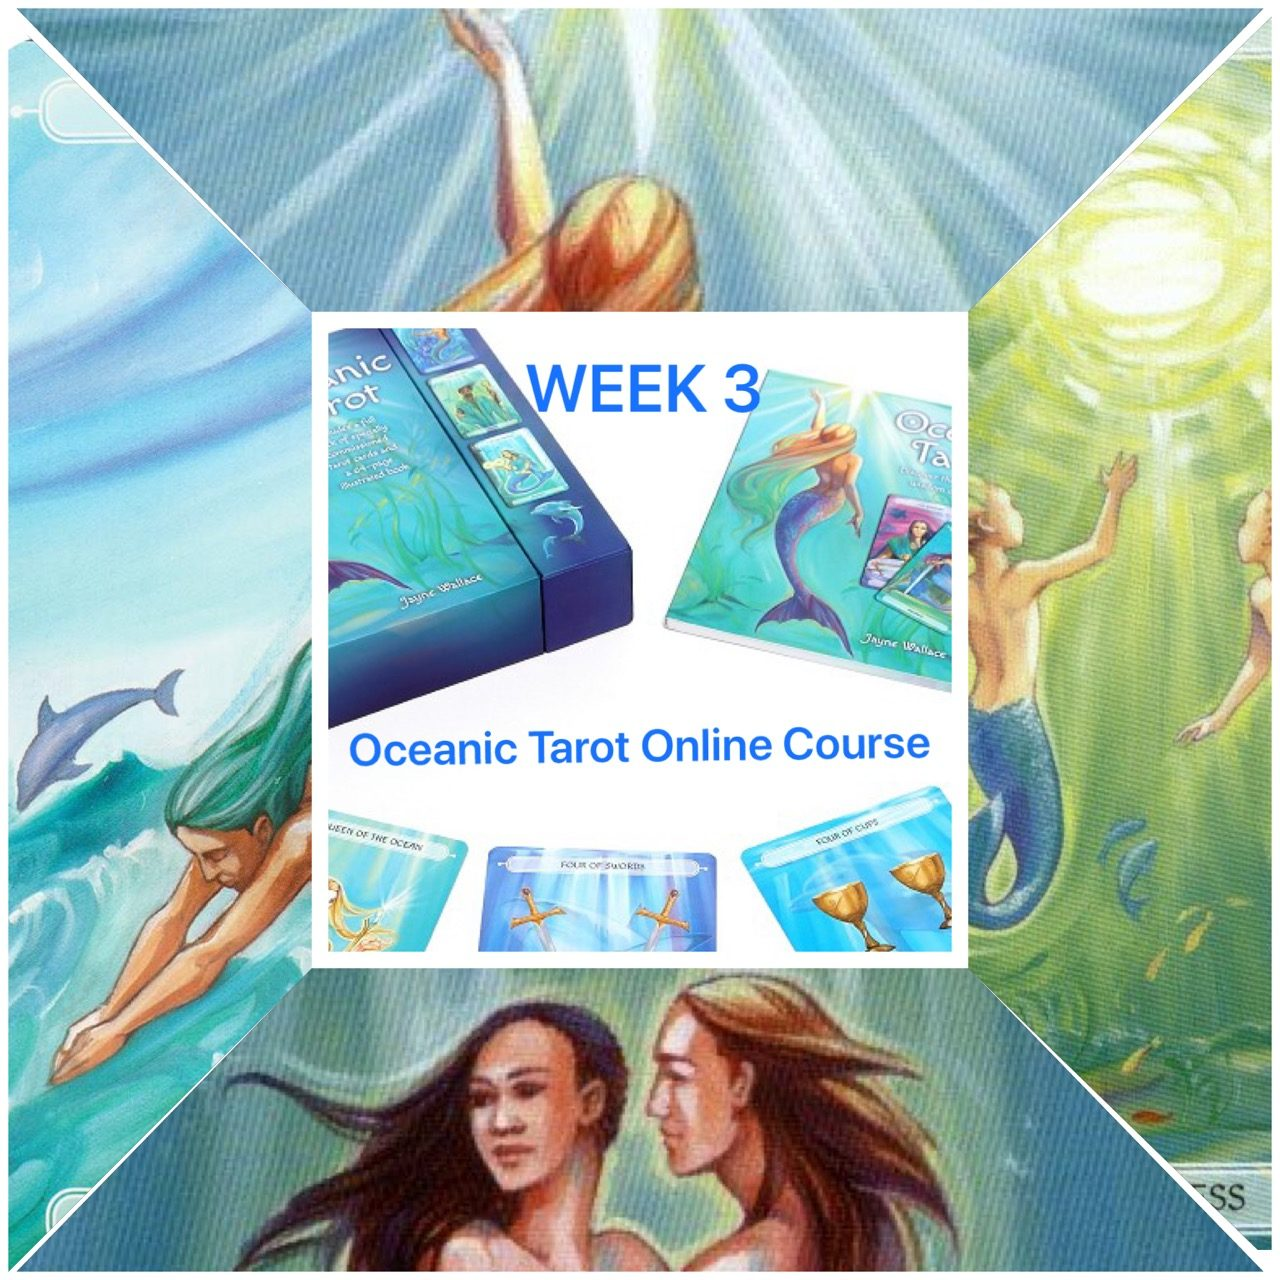 Oceanic Tarot Course - Twos -  Week 3